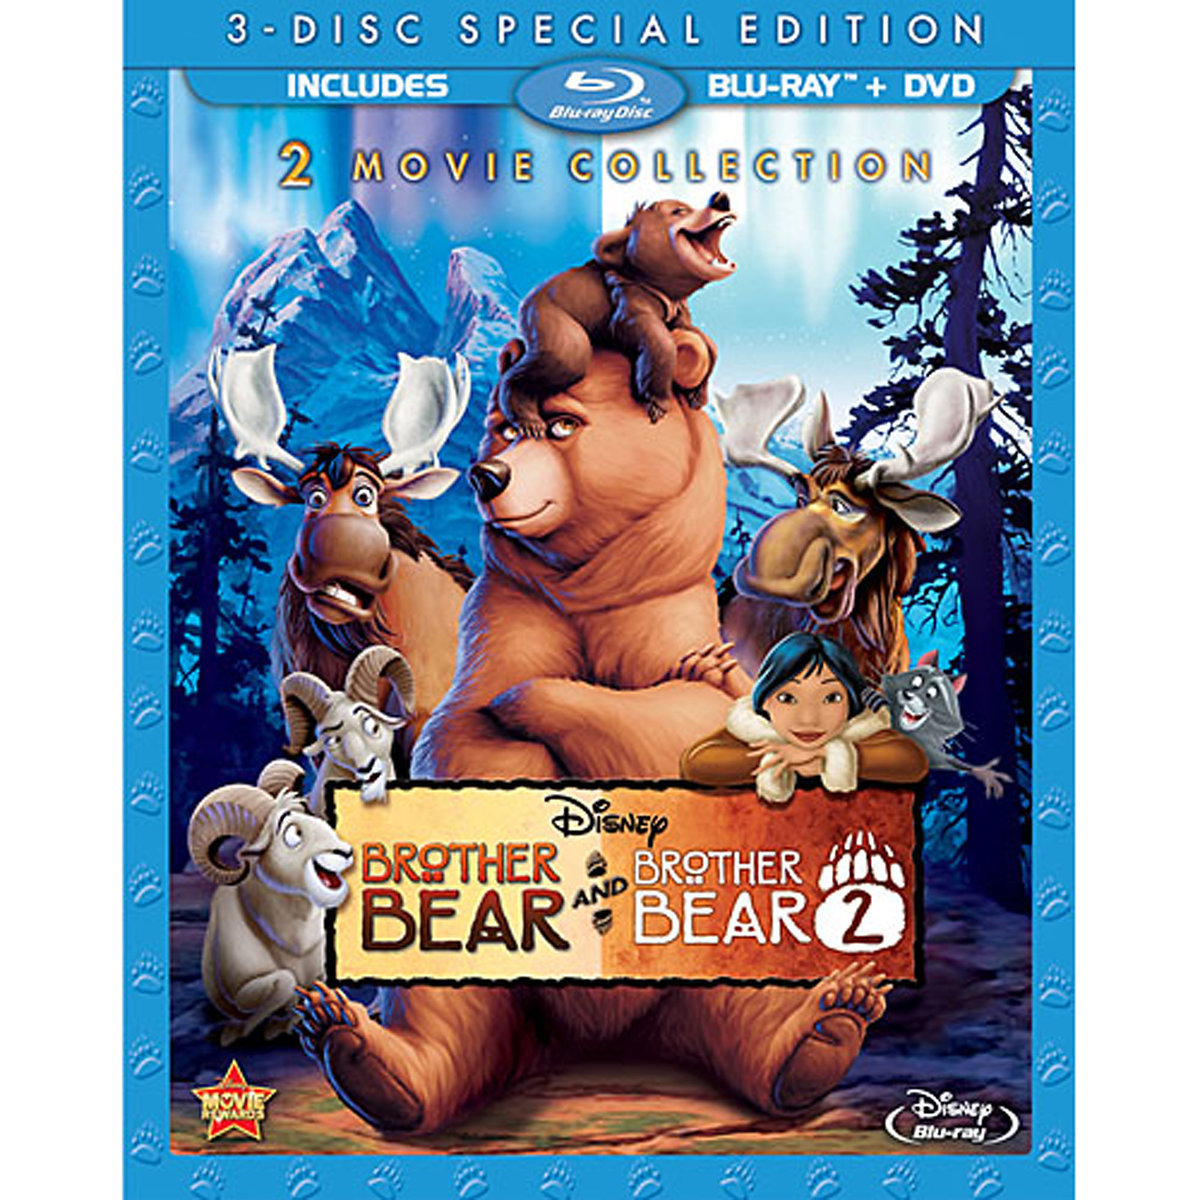 Brother Bear 2 Movie Collection (Blu-ray + DVD) by DISNEY/BUENA VISTA HOME VIDEO